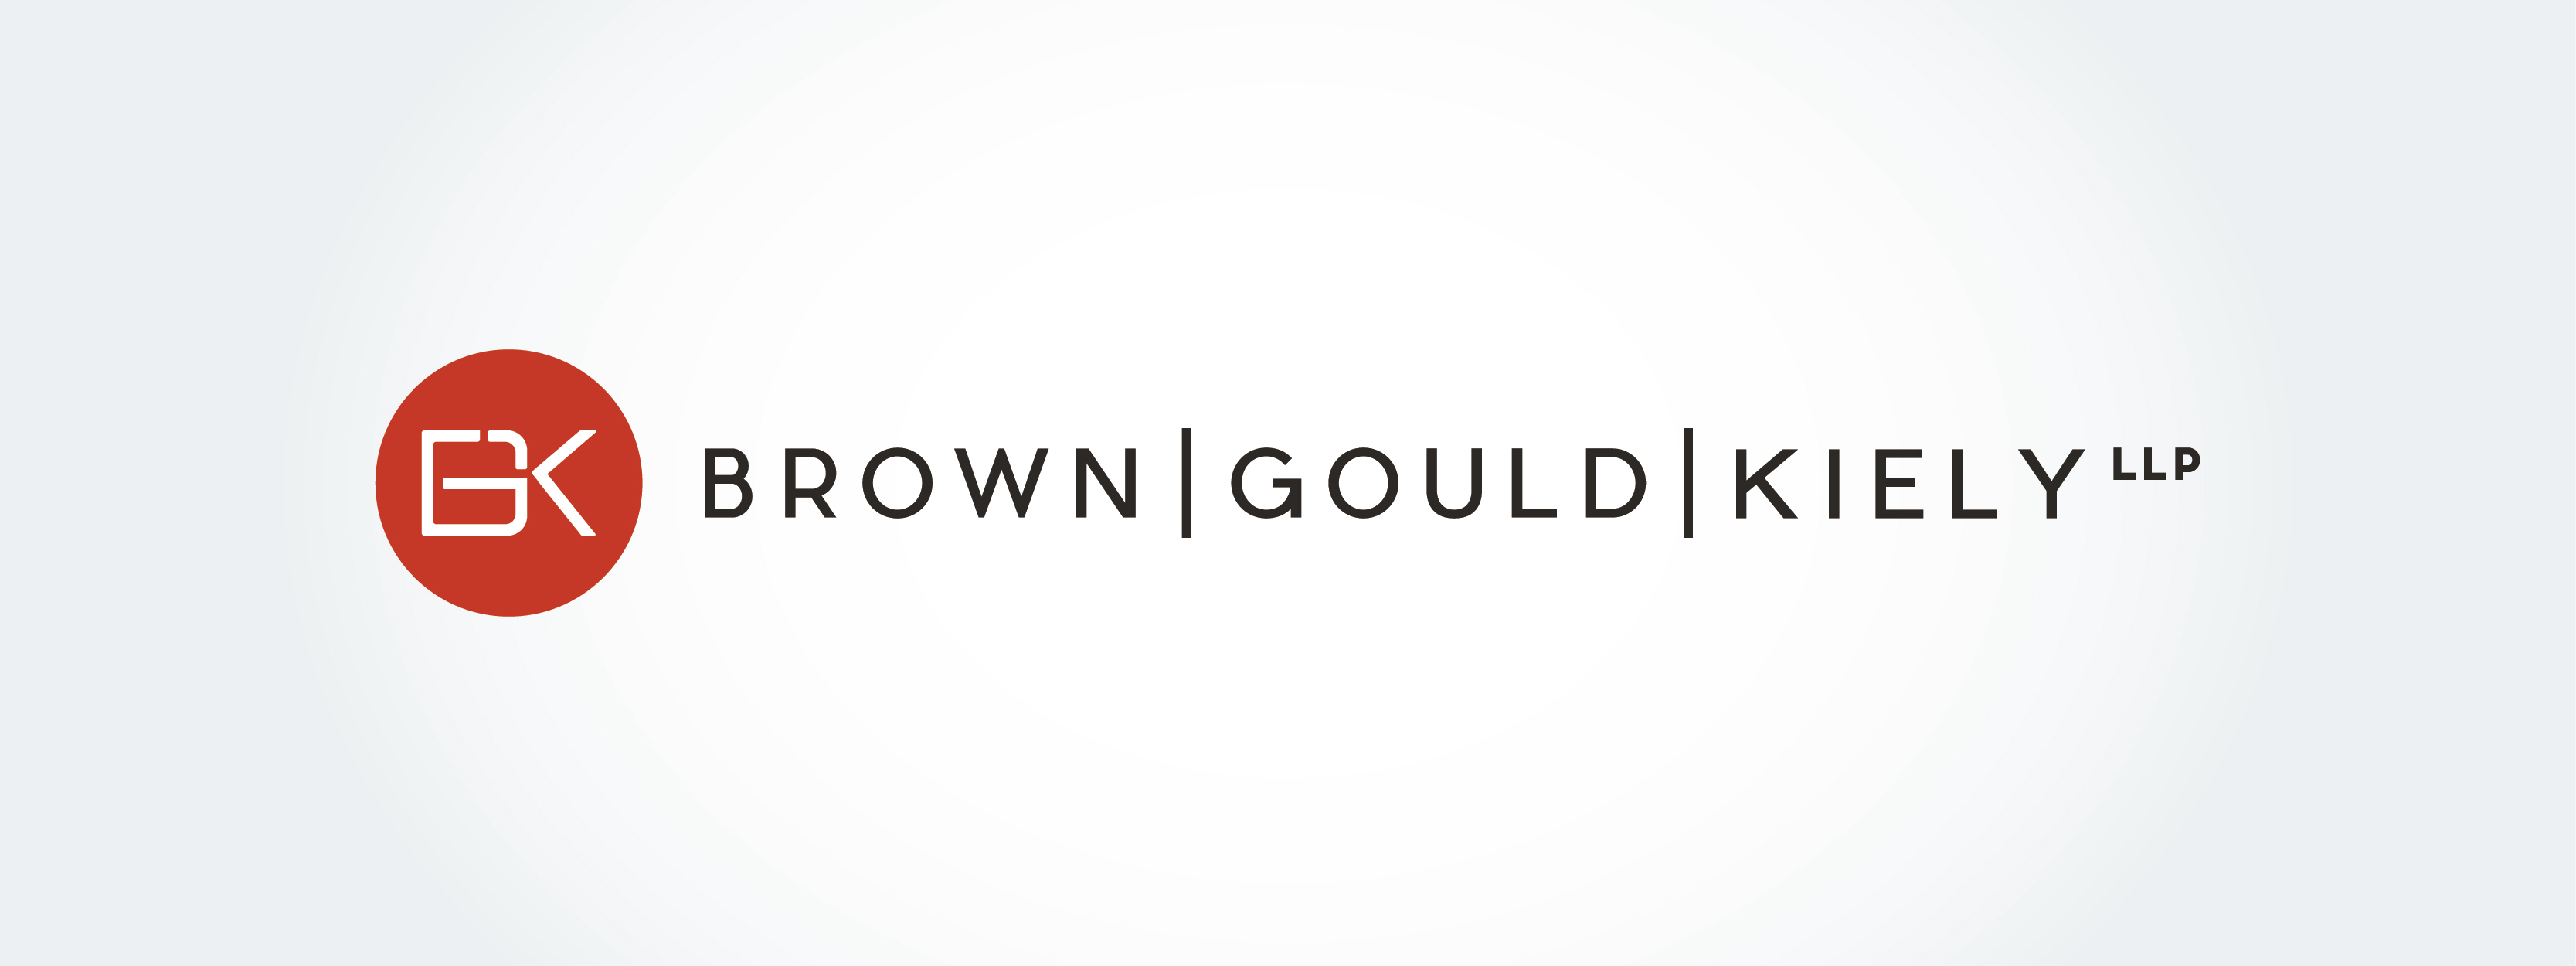 Brown Gould and Kiely logo Featured Image